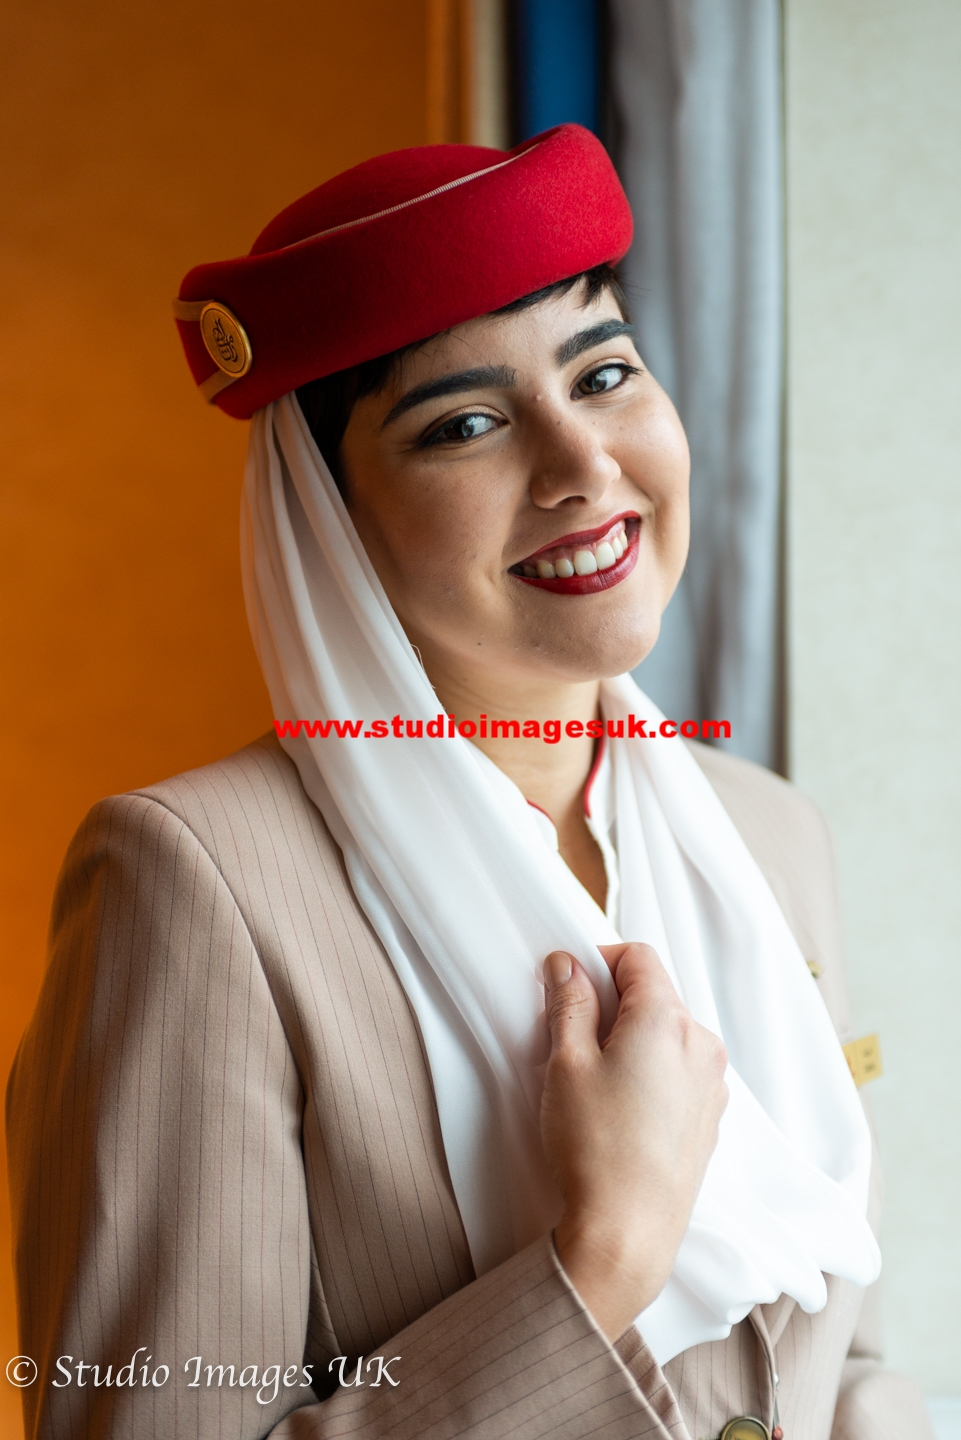 - Look at Emirates Cabin Crew job description and match each and every requirement to that of your own work experience.